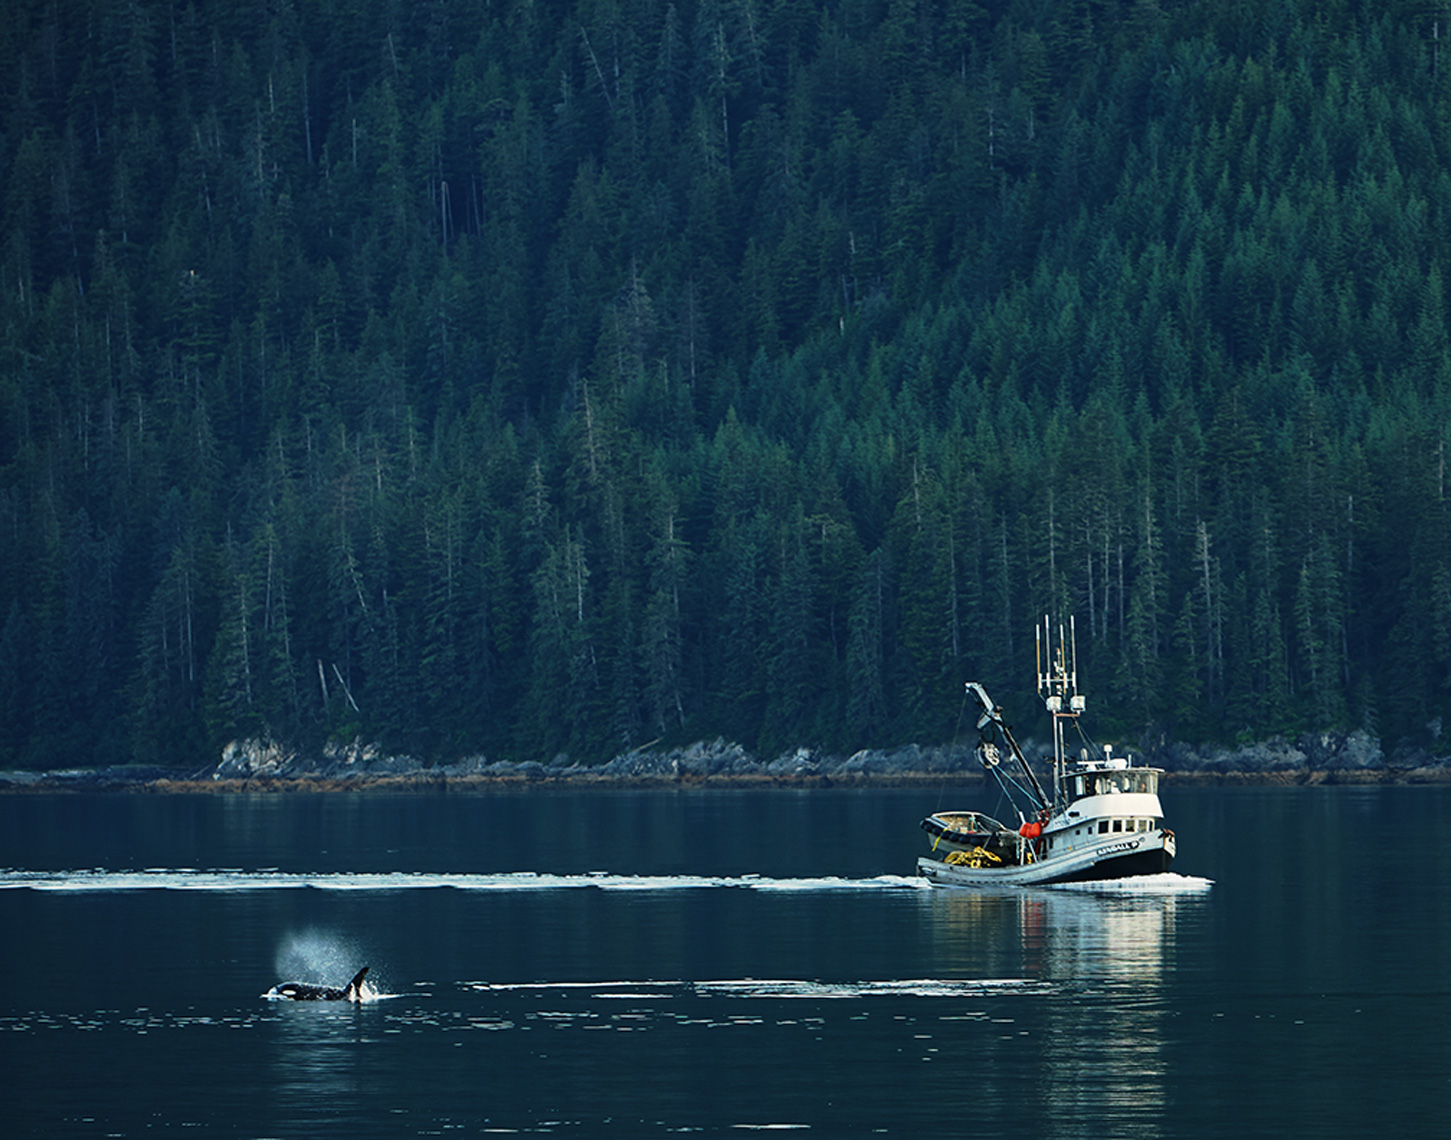 06-28-2017_fishing_boat_orca